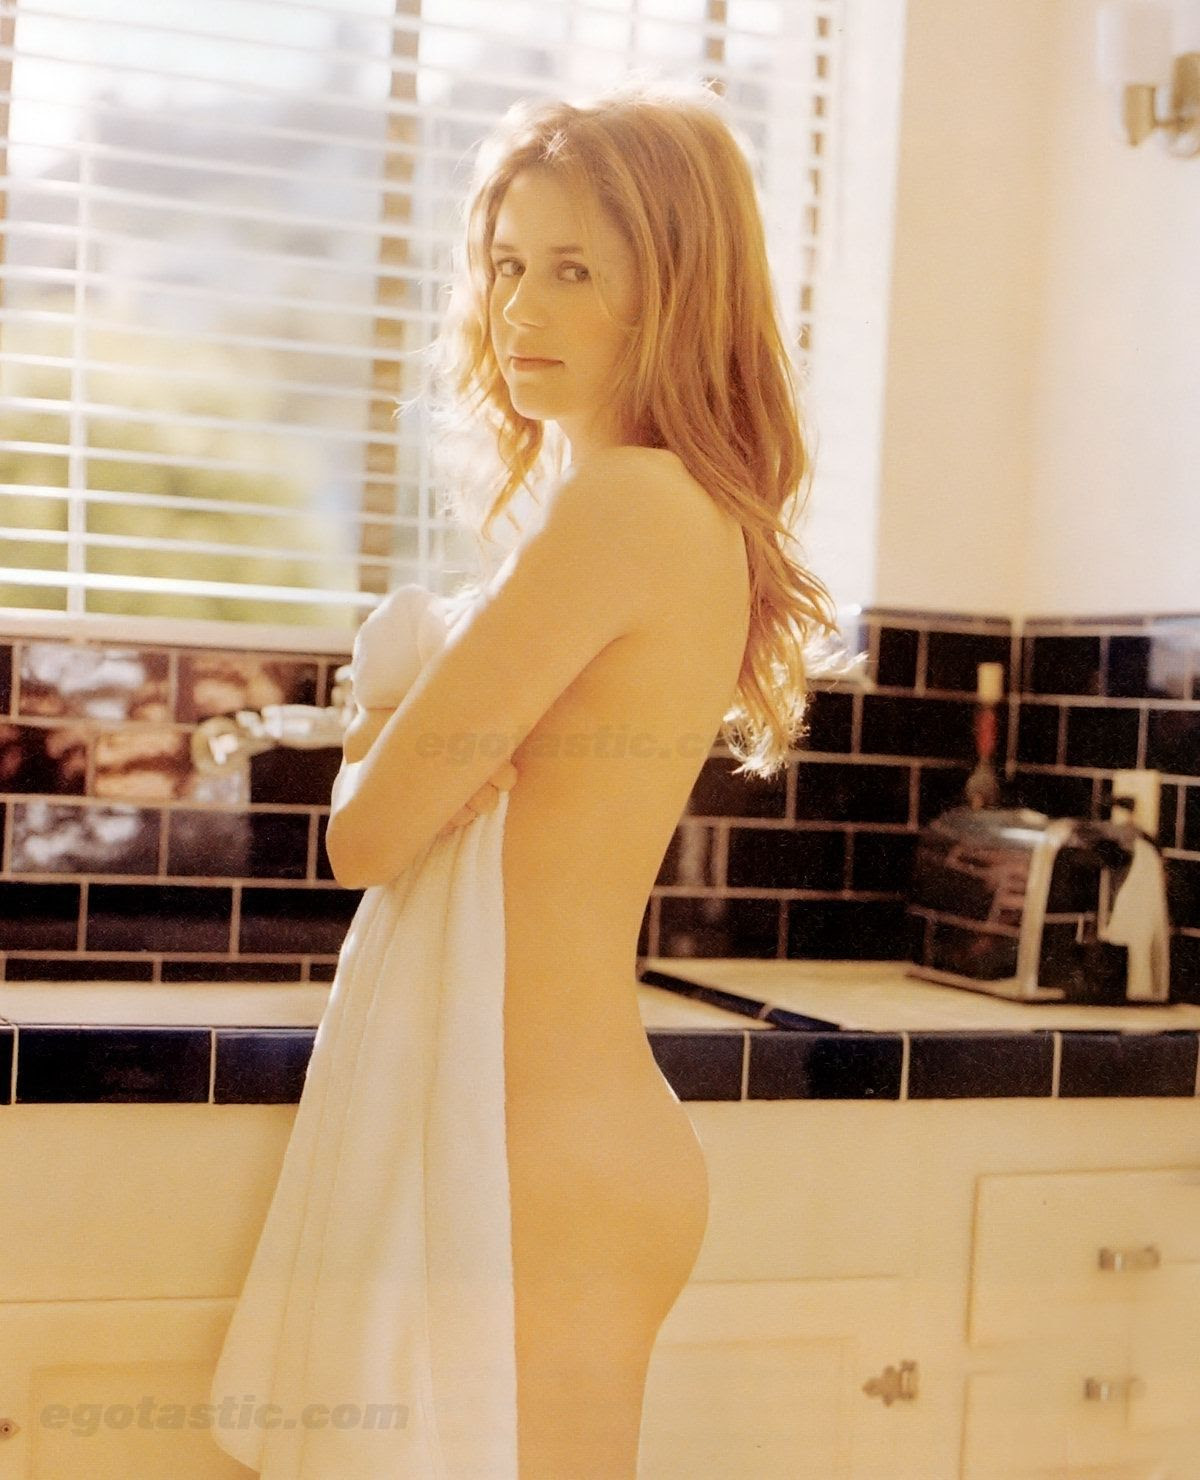 http://dailybiz.files.wordpress.com/2008/05/jenna-fischer.jpg